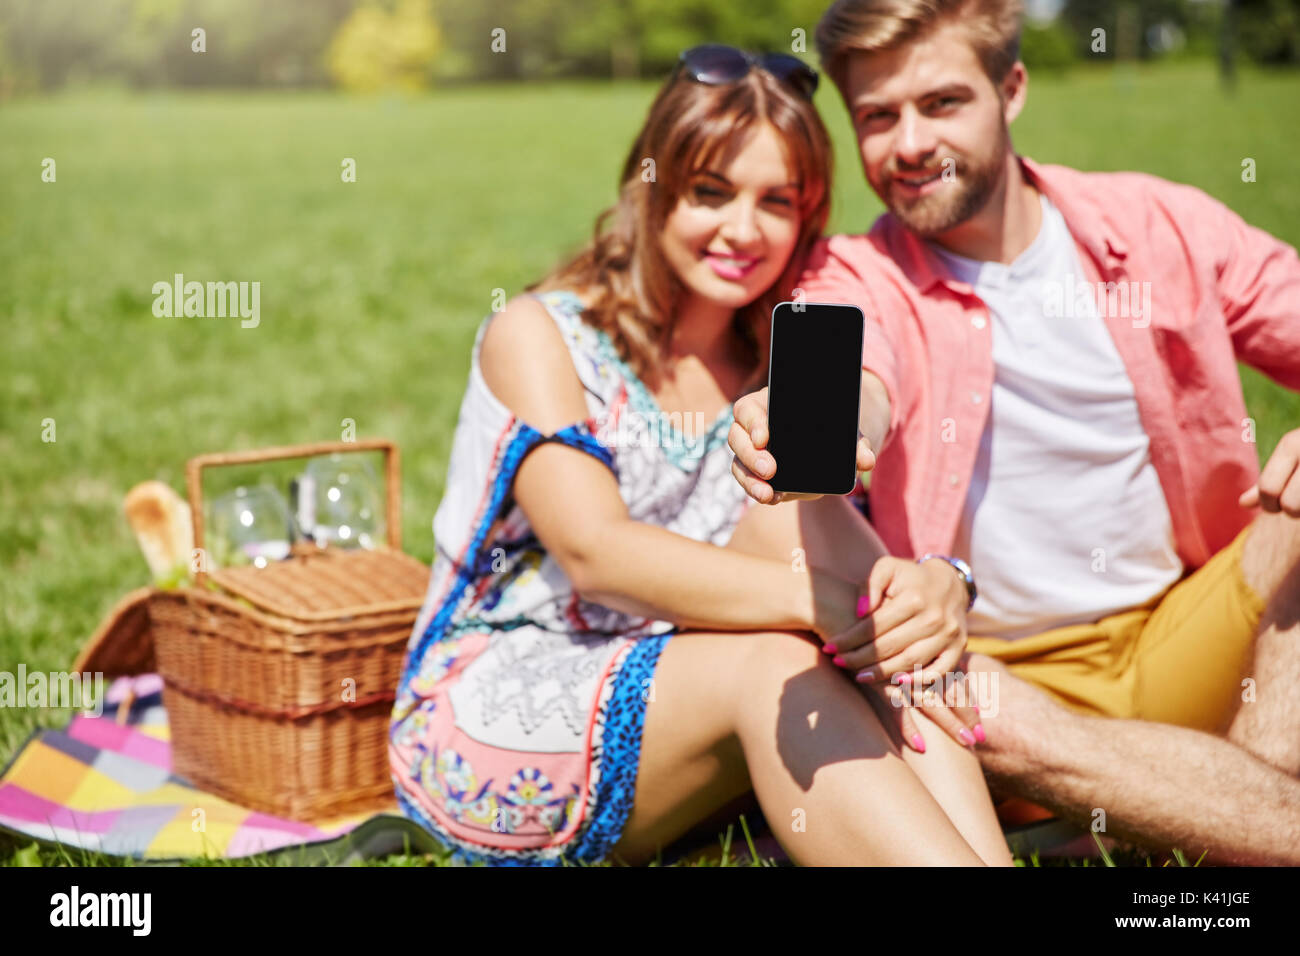 A photo of young, happy couple picnicking on the meadow. The man is holding his newest smartphone. - Stock Image